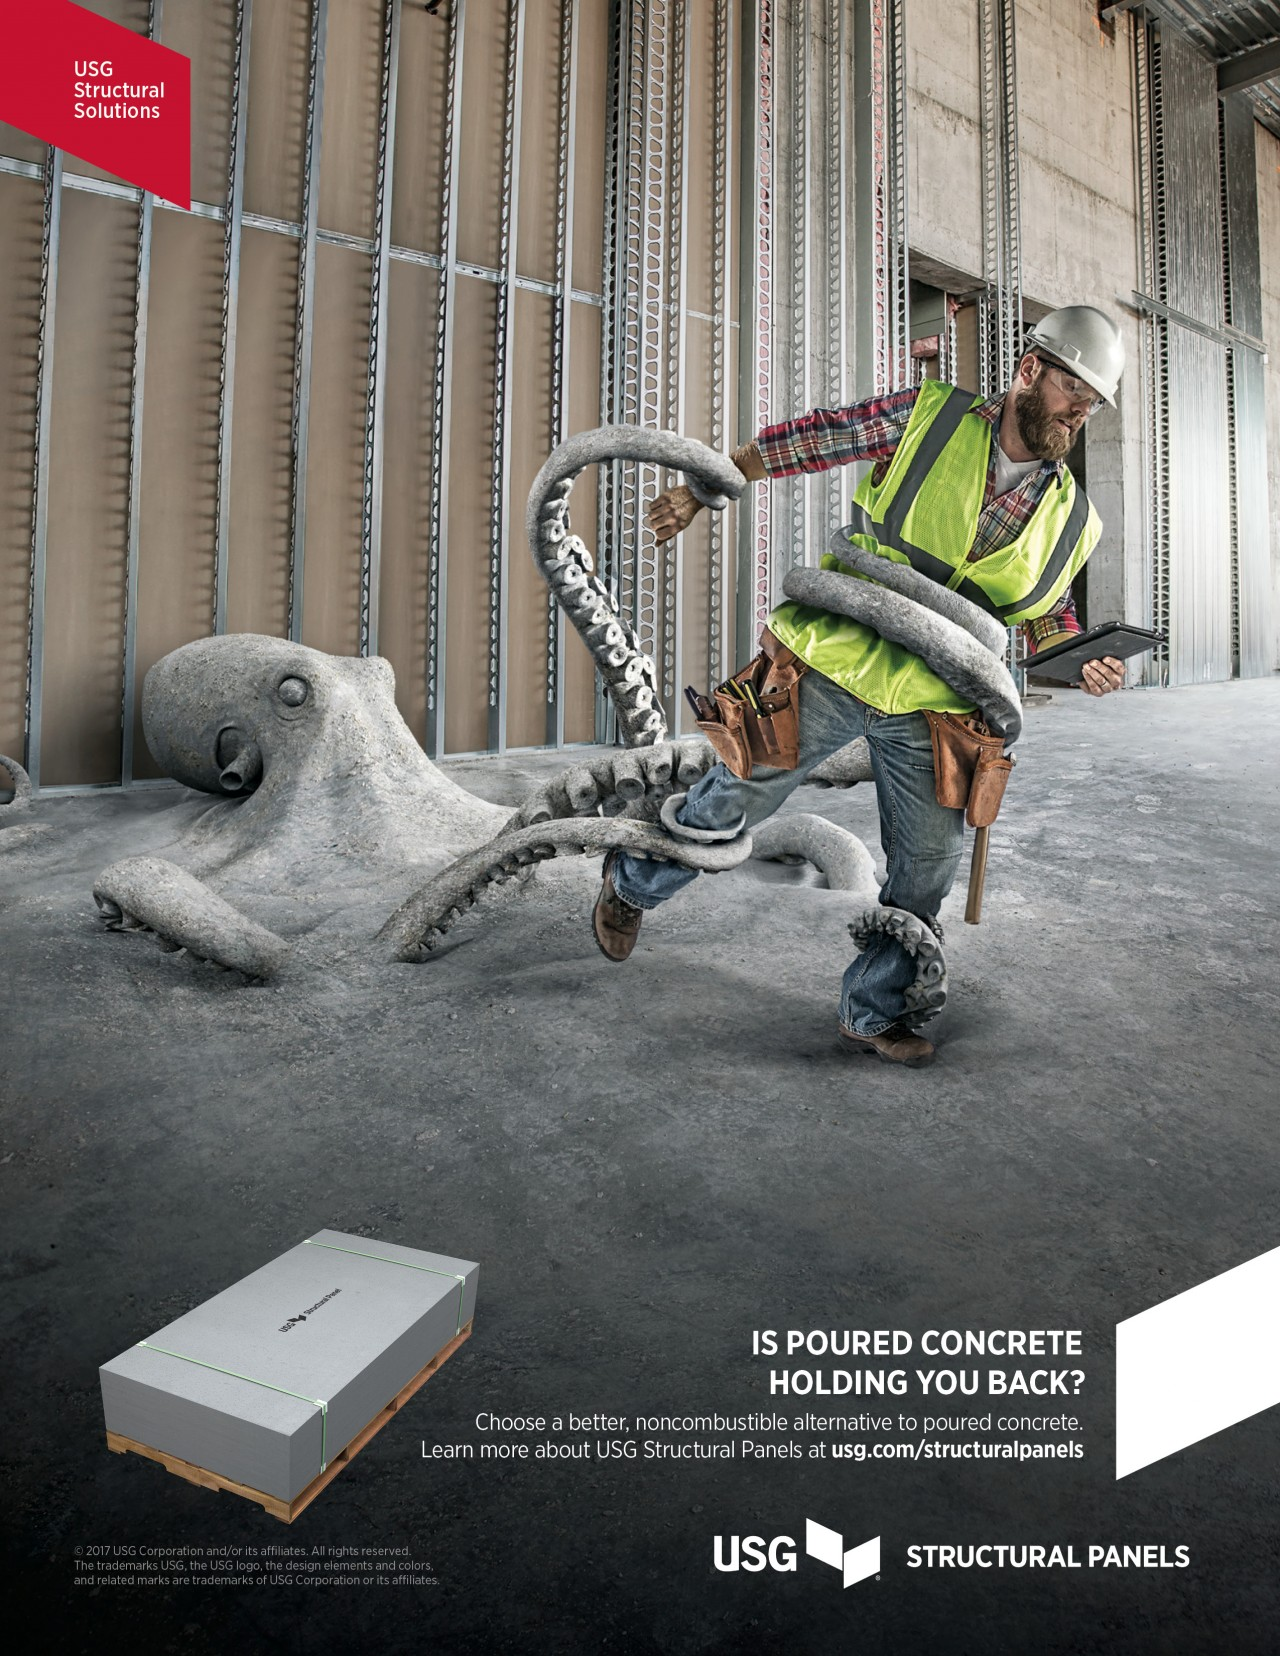 The octopus, hippo and turtle are all effective metaphors for concrete holding a builder back from completing a mid-rise project on time.